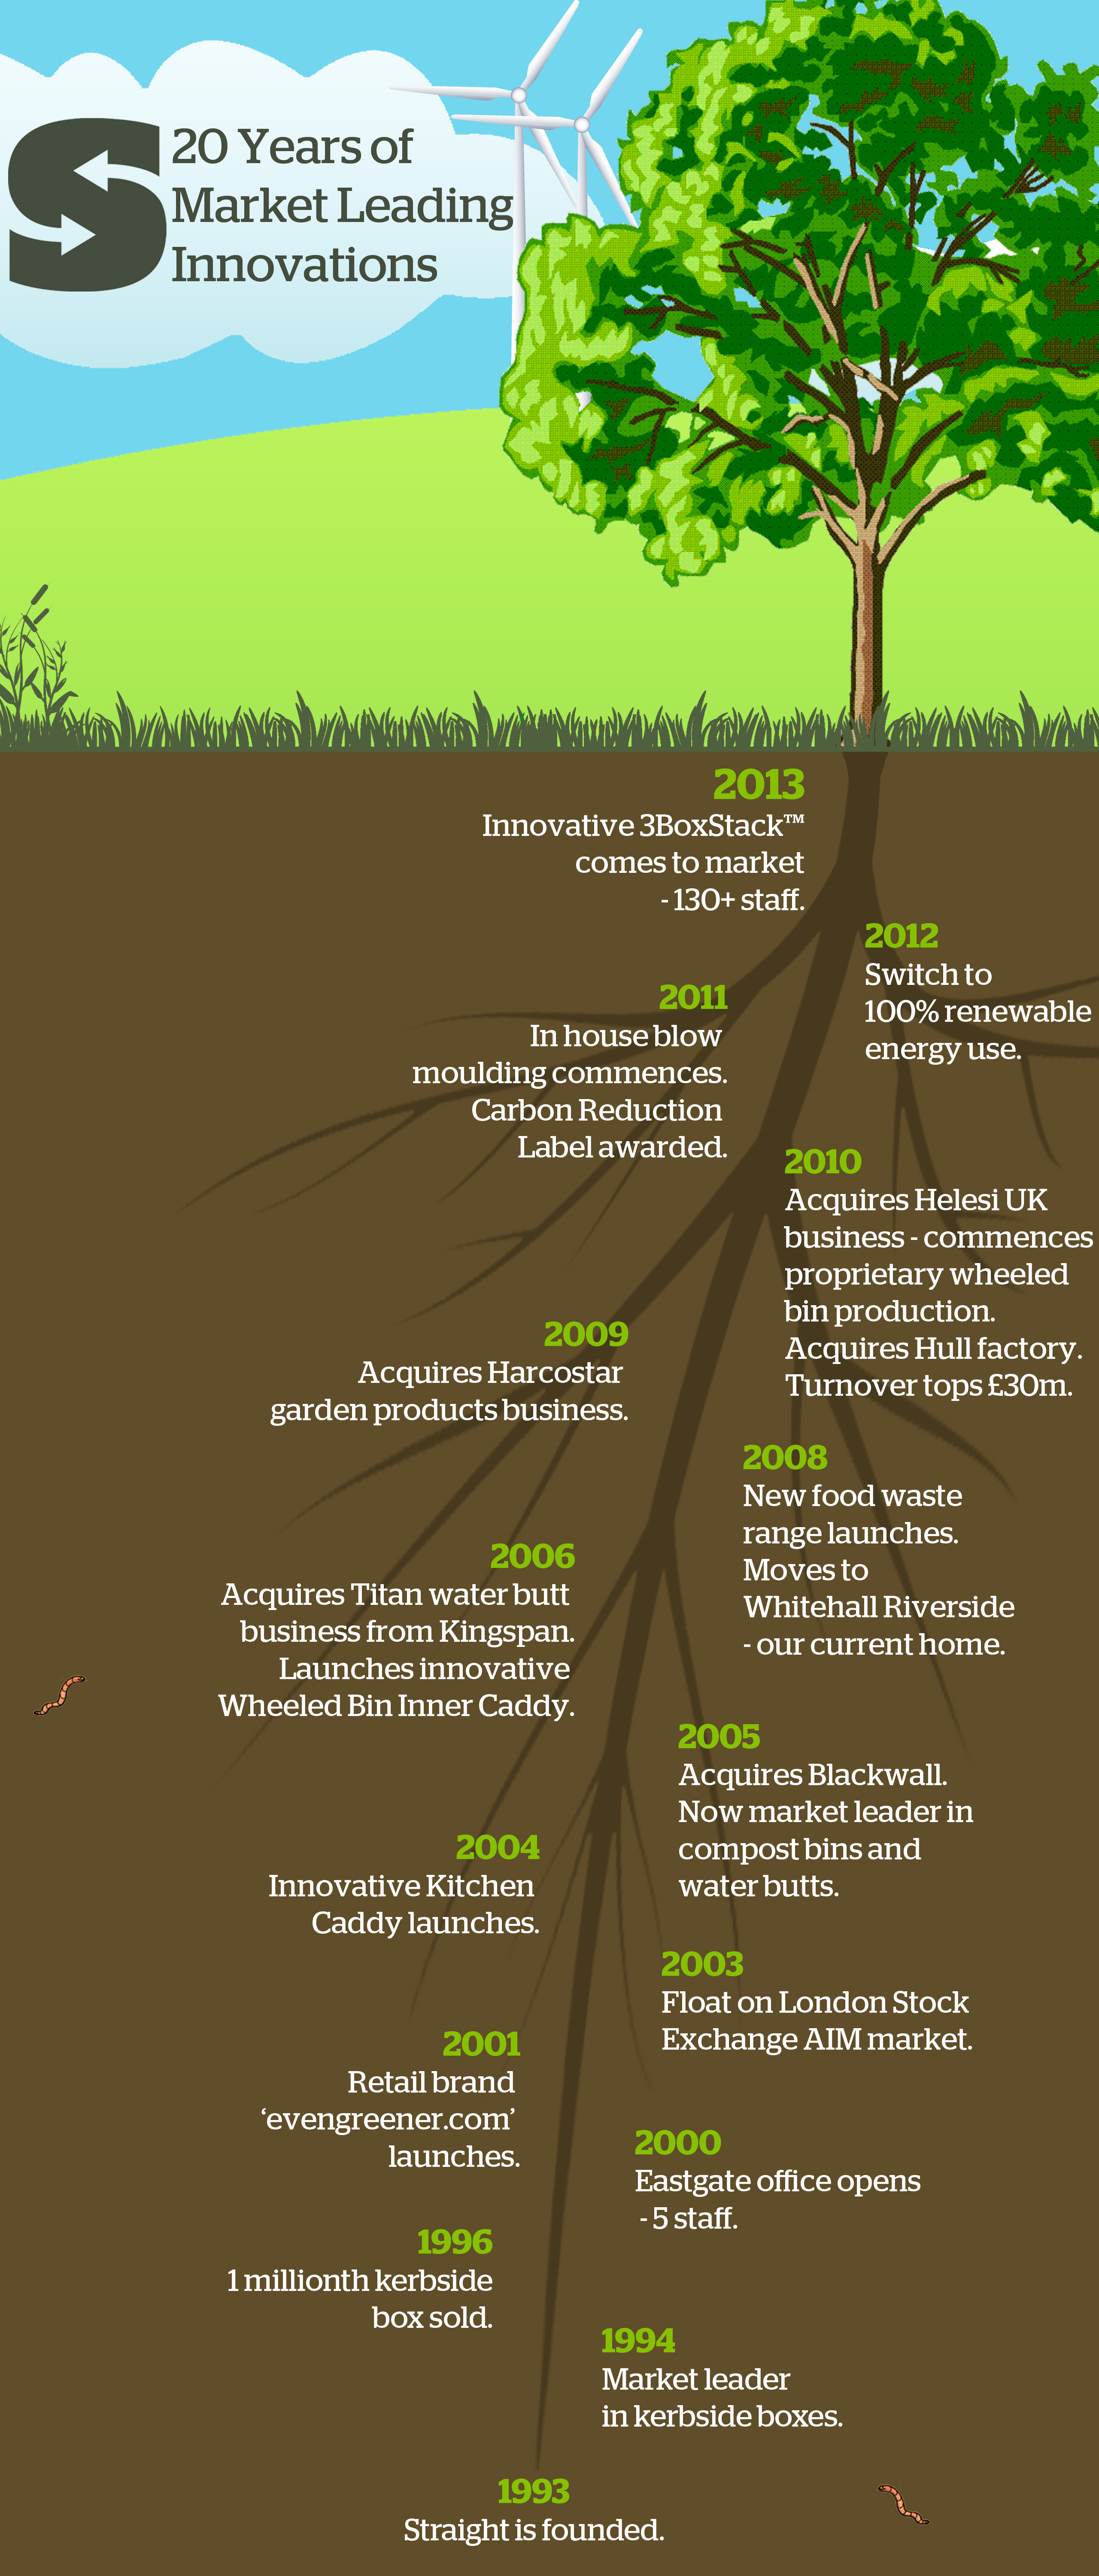 A visual breakdown of Straight Ltd's history over the last 20 years